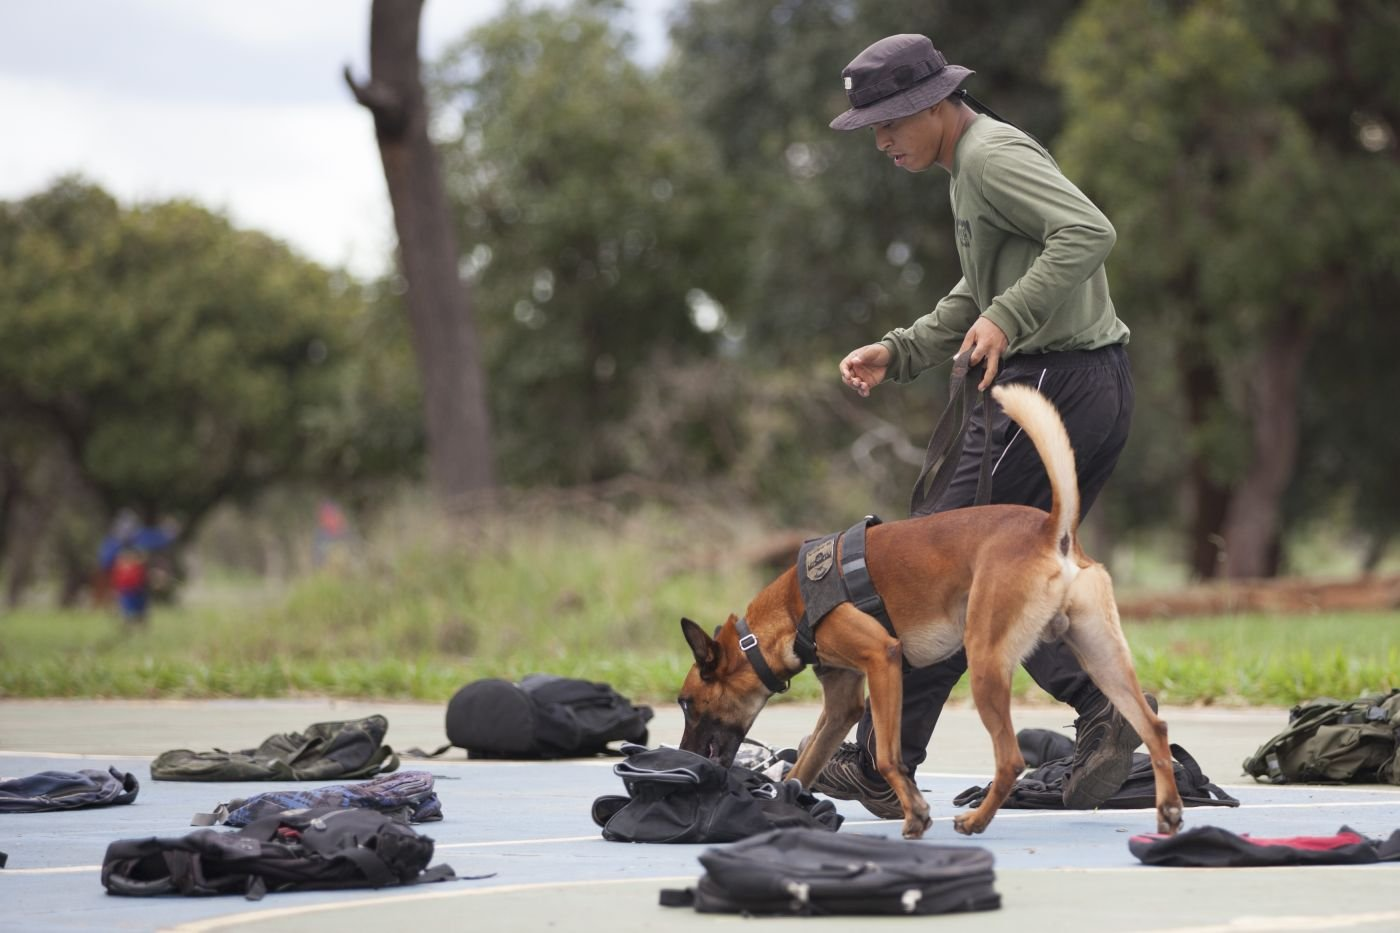 Brazilian Air Force Dogs Help Security Forces Sniff Out Drugs, Explosives, Weapons